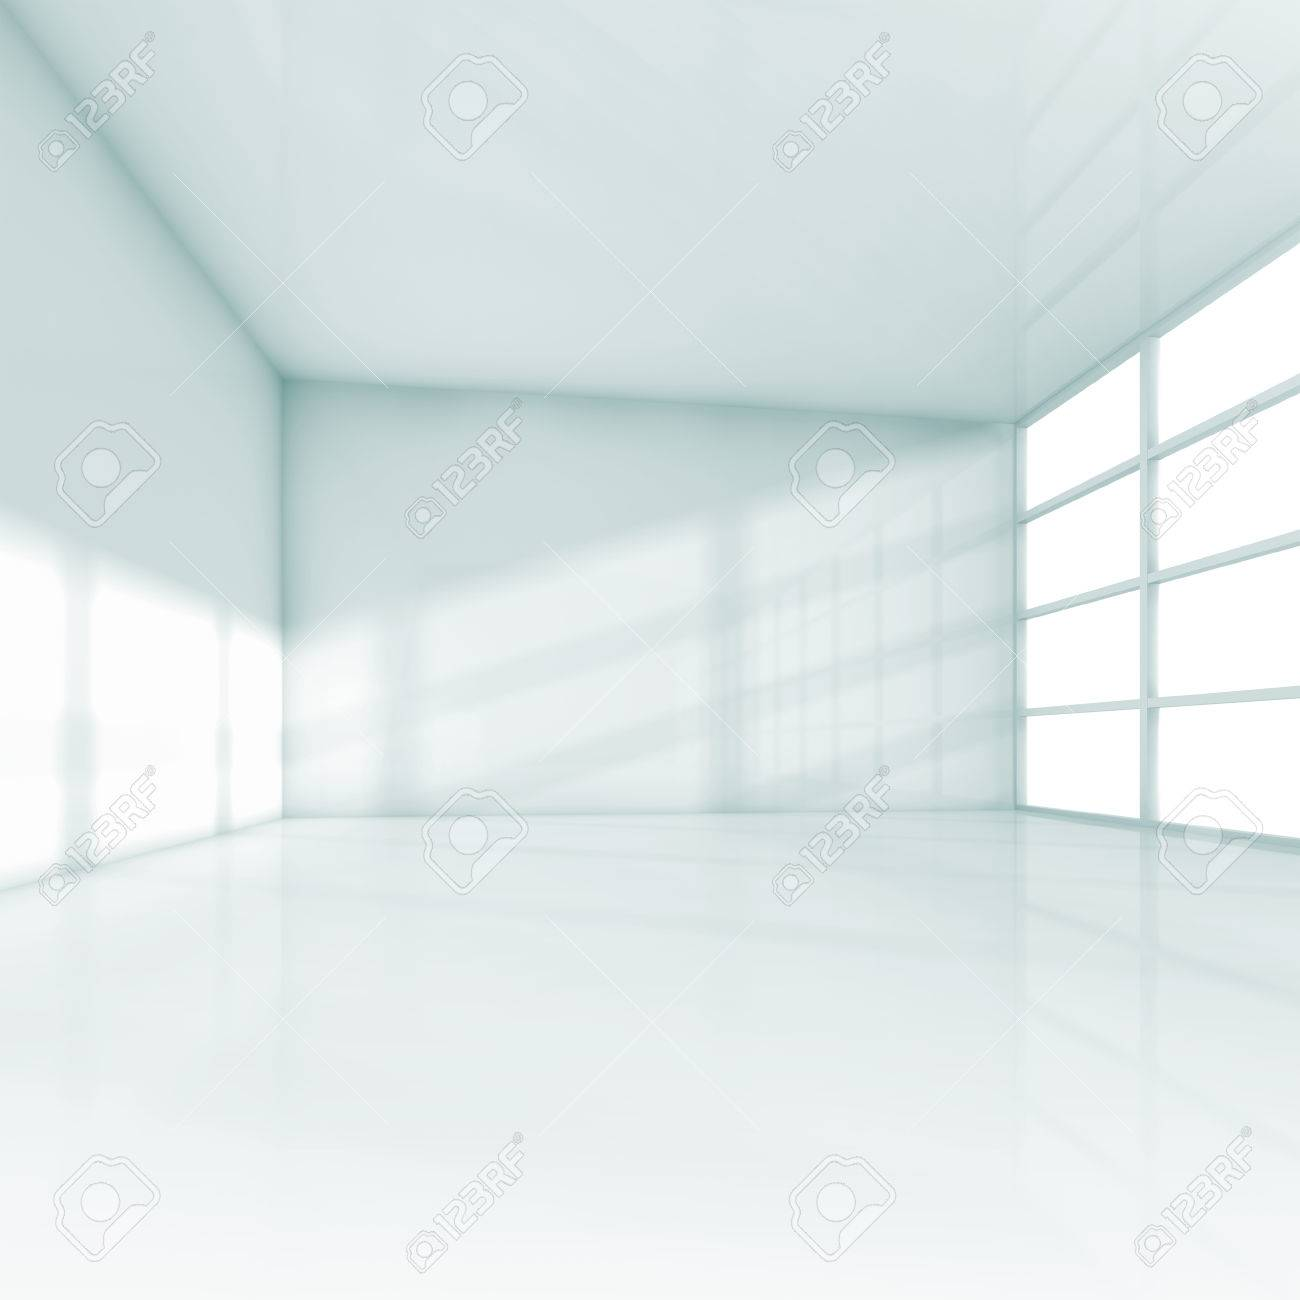 Abstract White Interior, Empty Office Room With Windows. Square ...